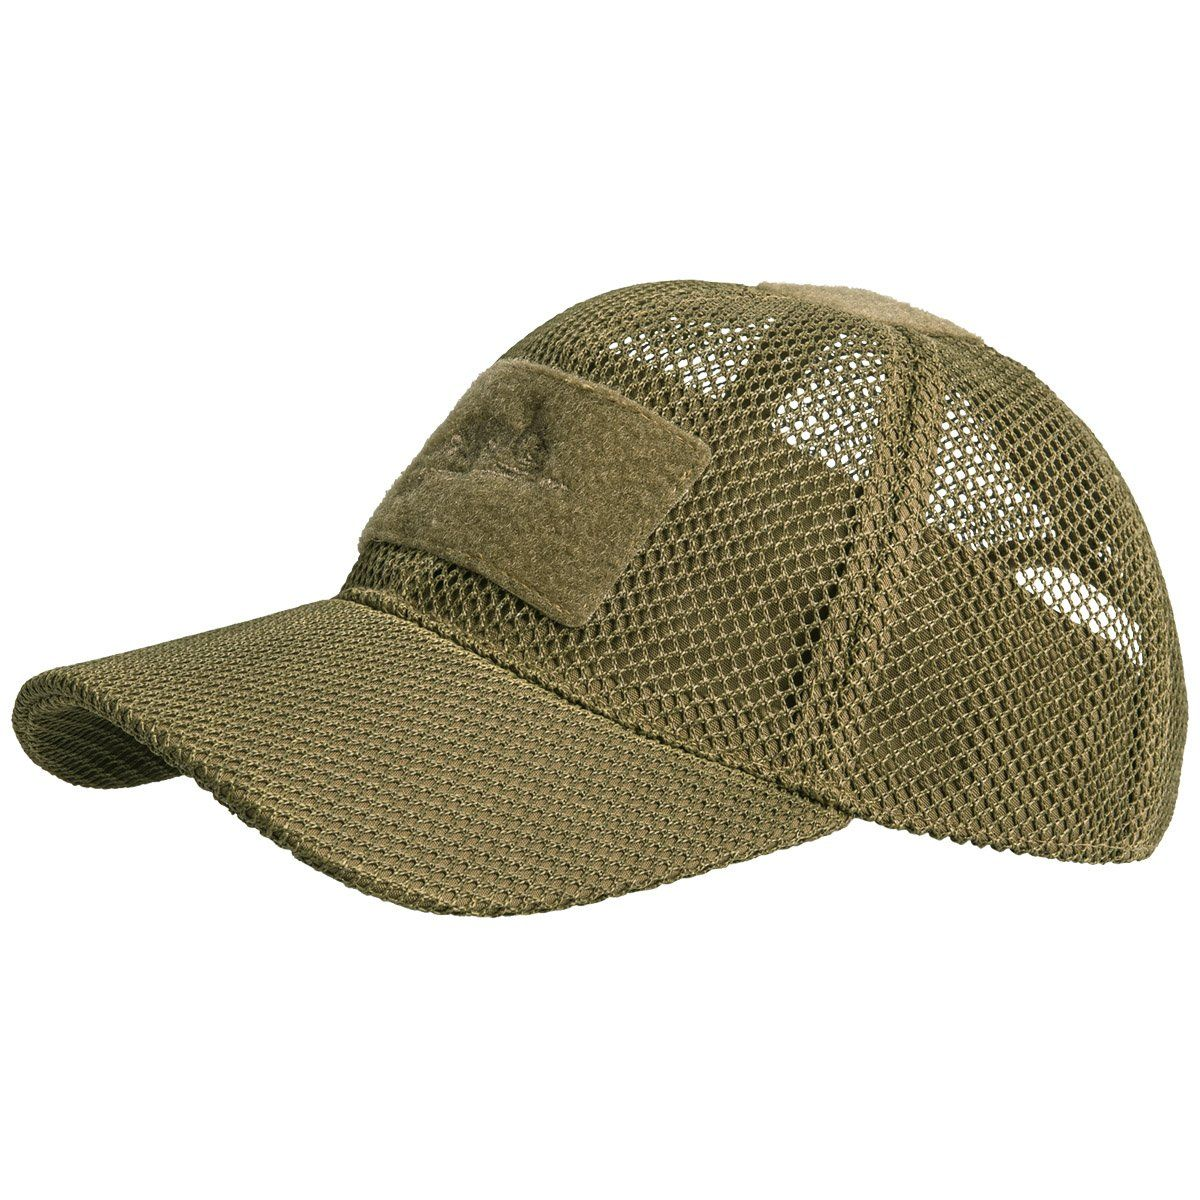 Coyote Operators Mesh Baseball Cap With ID Panels Airsoft Army Hat Kombat